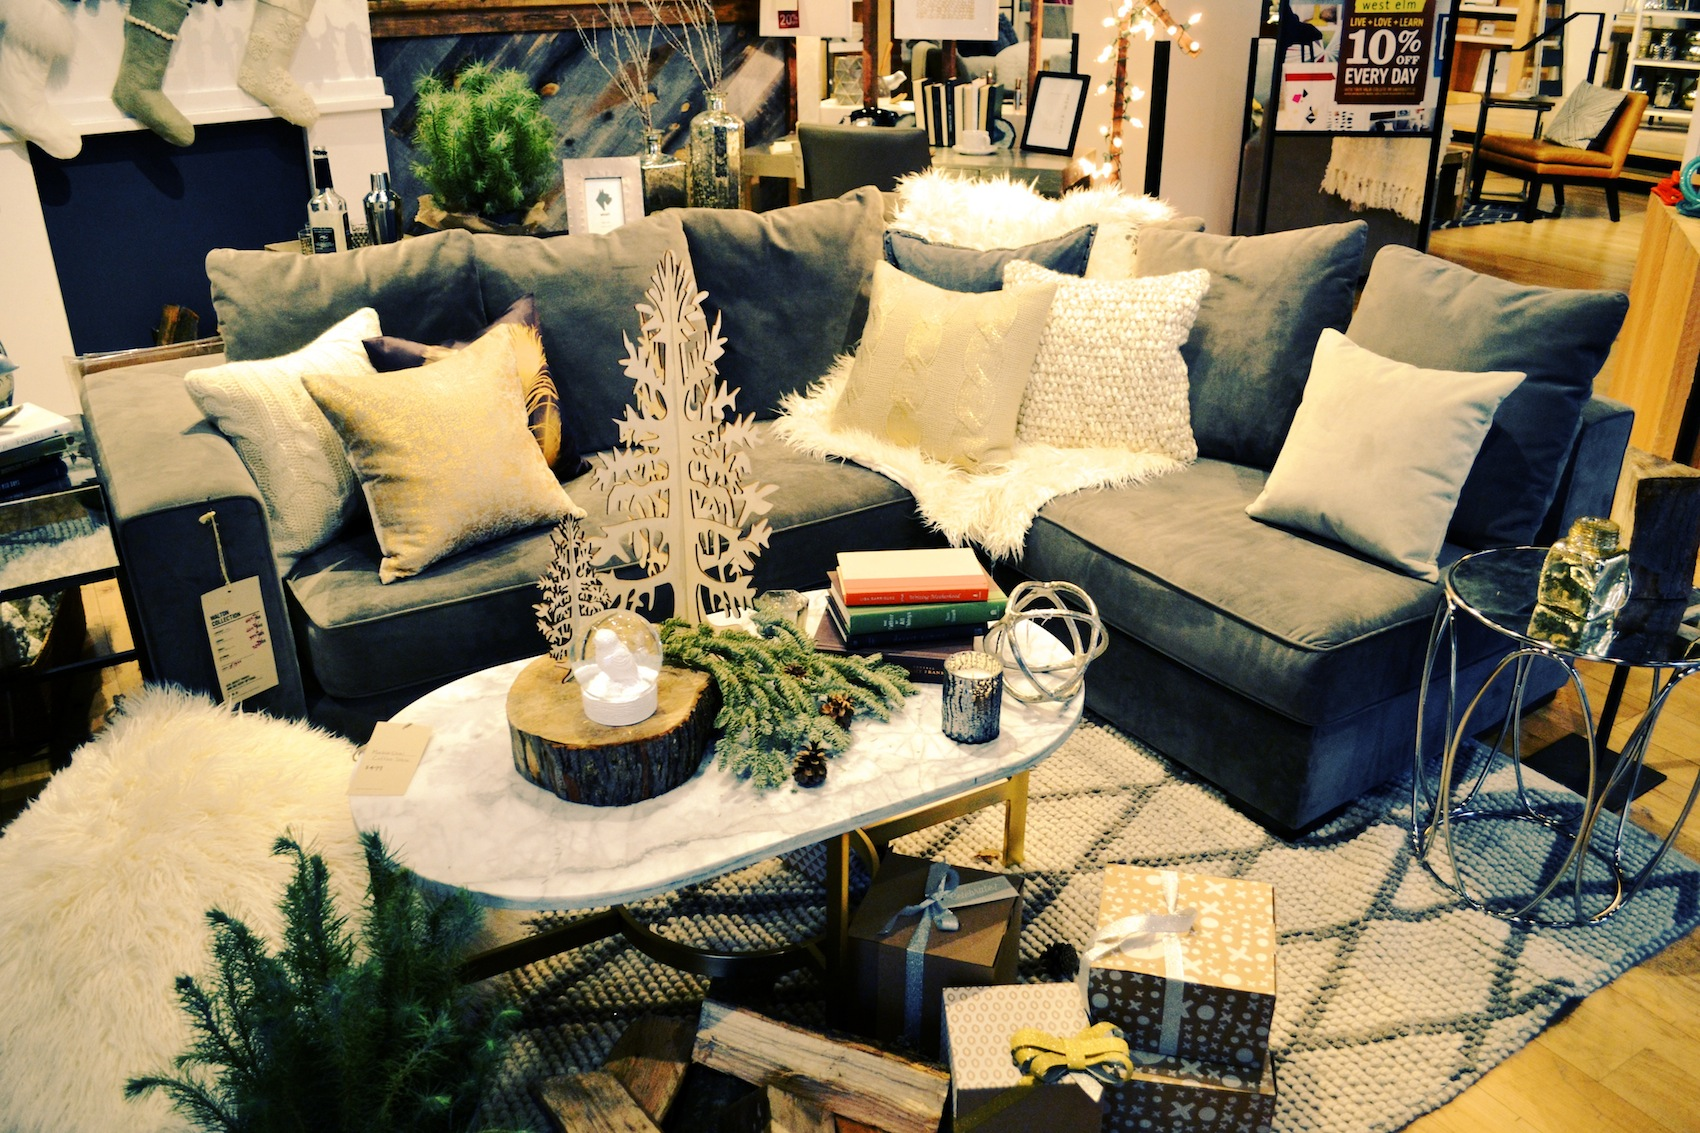 Getting Festive with west elm – Pop & Circumstance